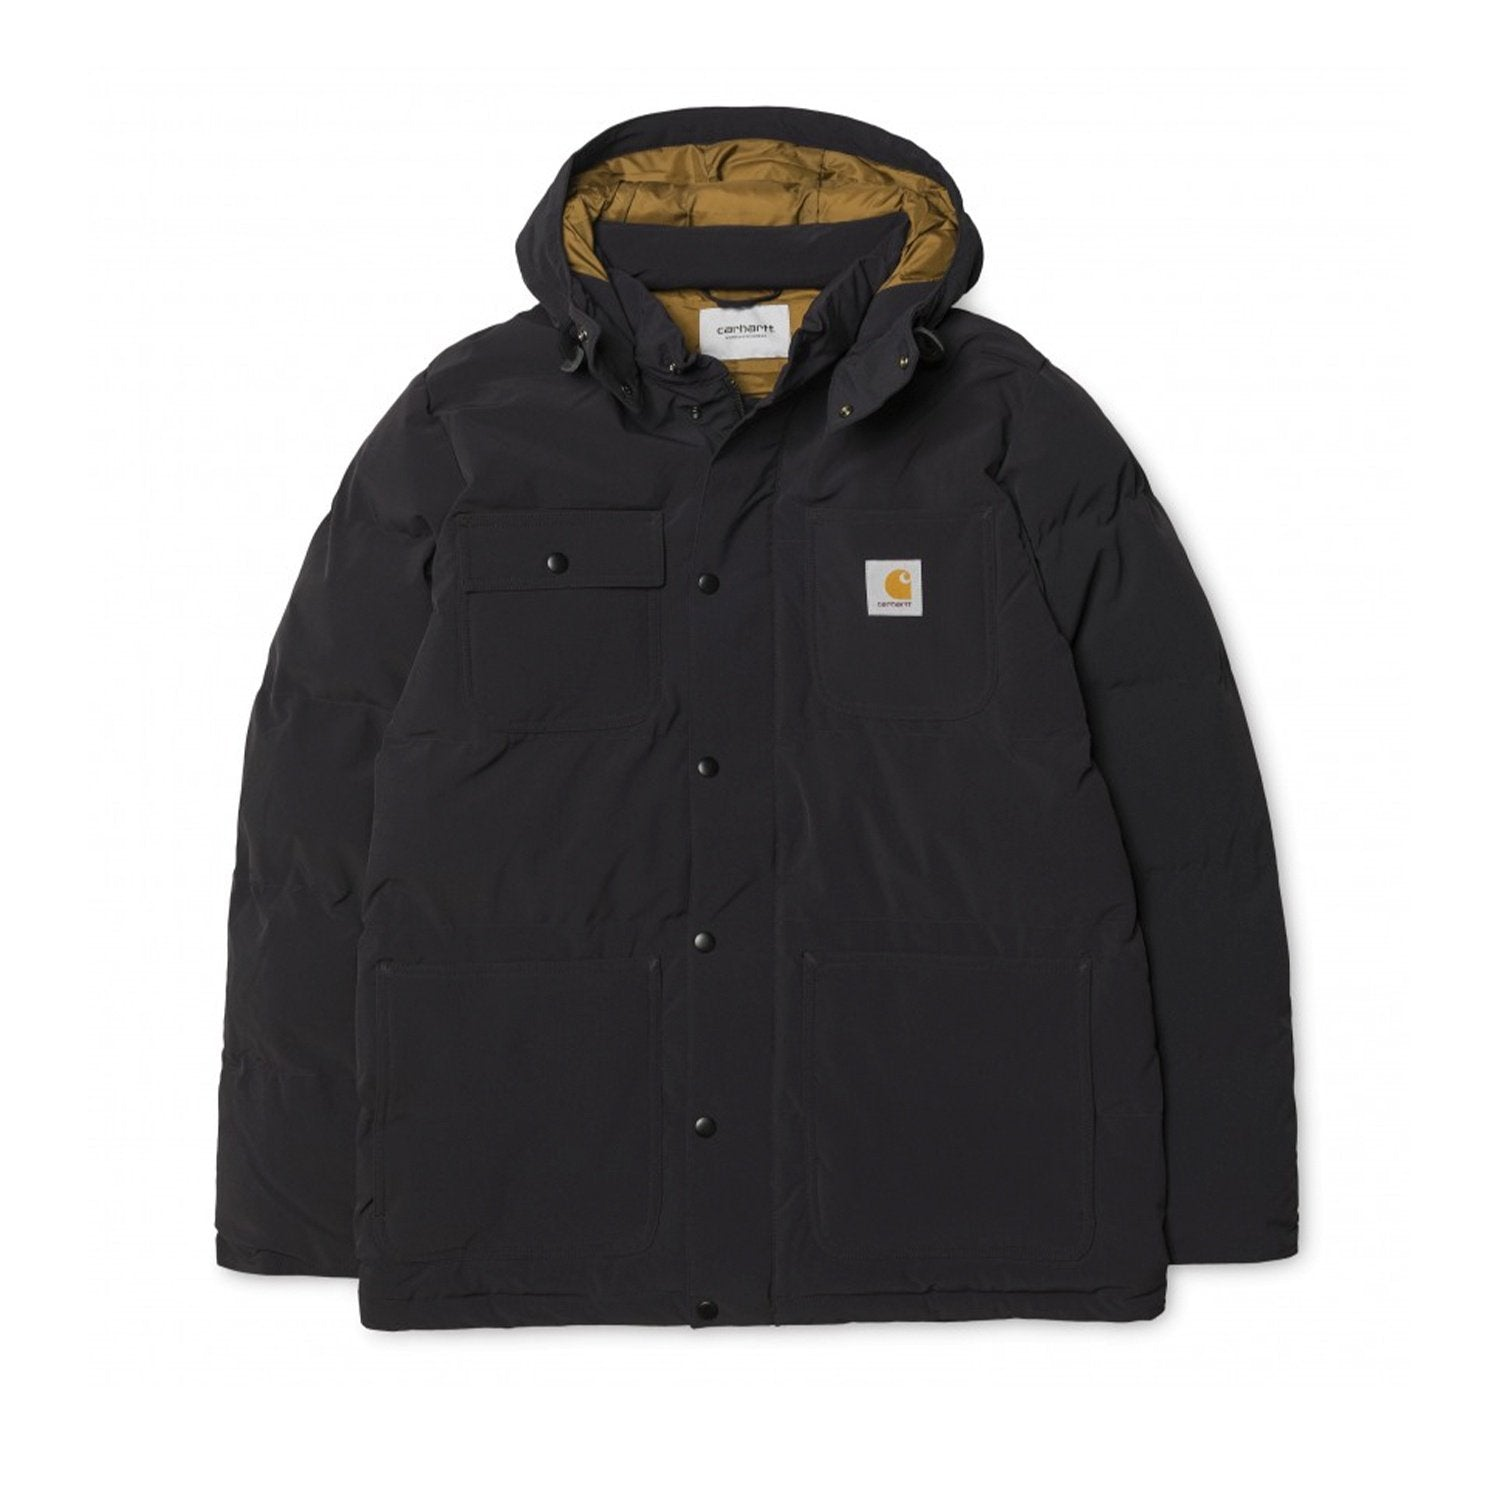 Carhartt WIP Alpine Coat - Black/Hamilton Brown